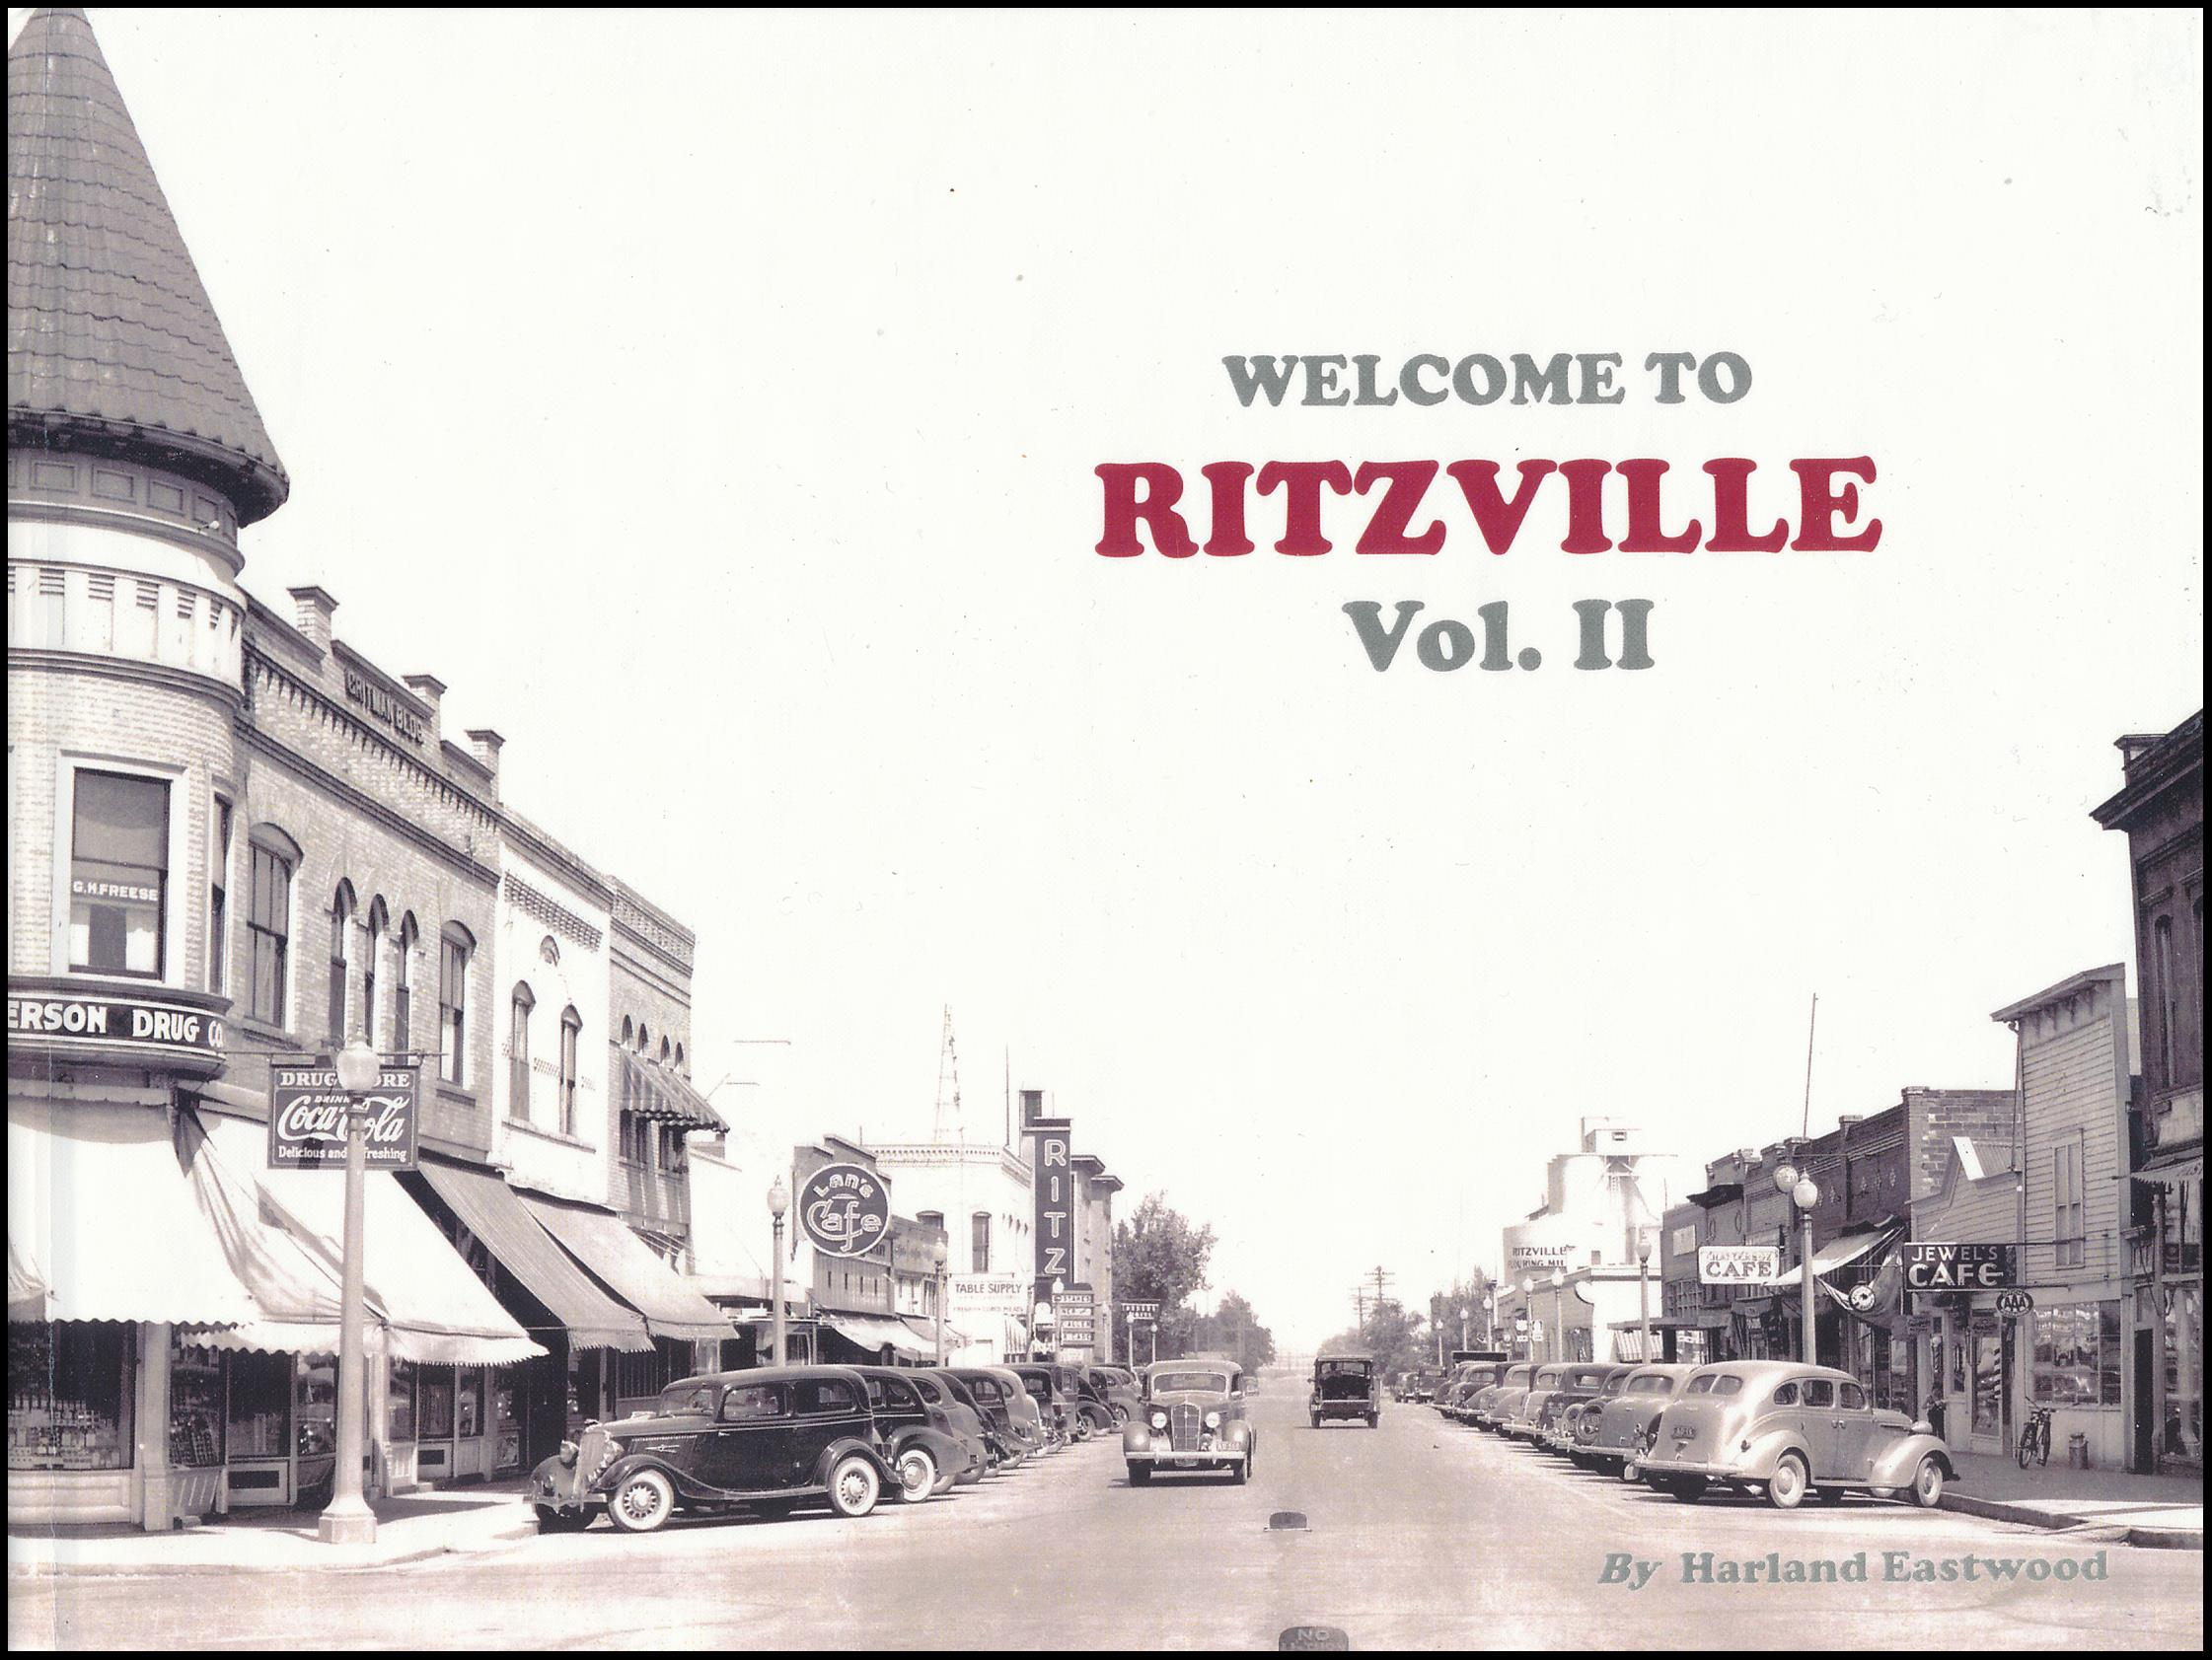 WELCOME TO RITZVILLE VOL. 2